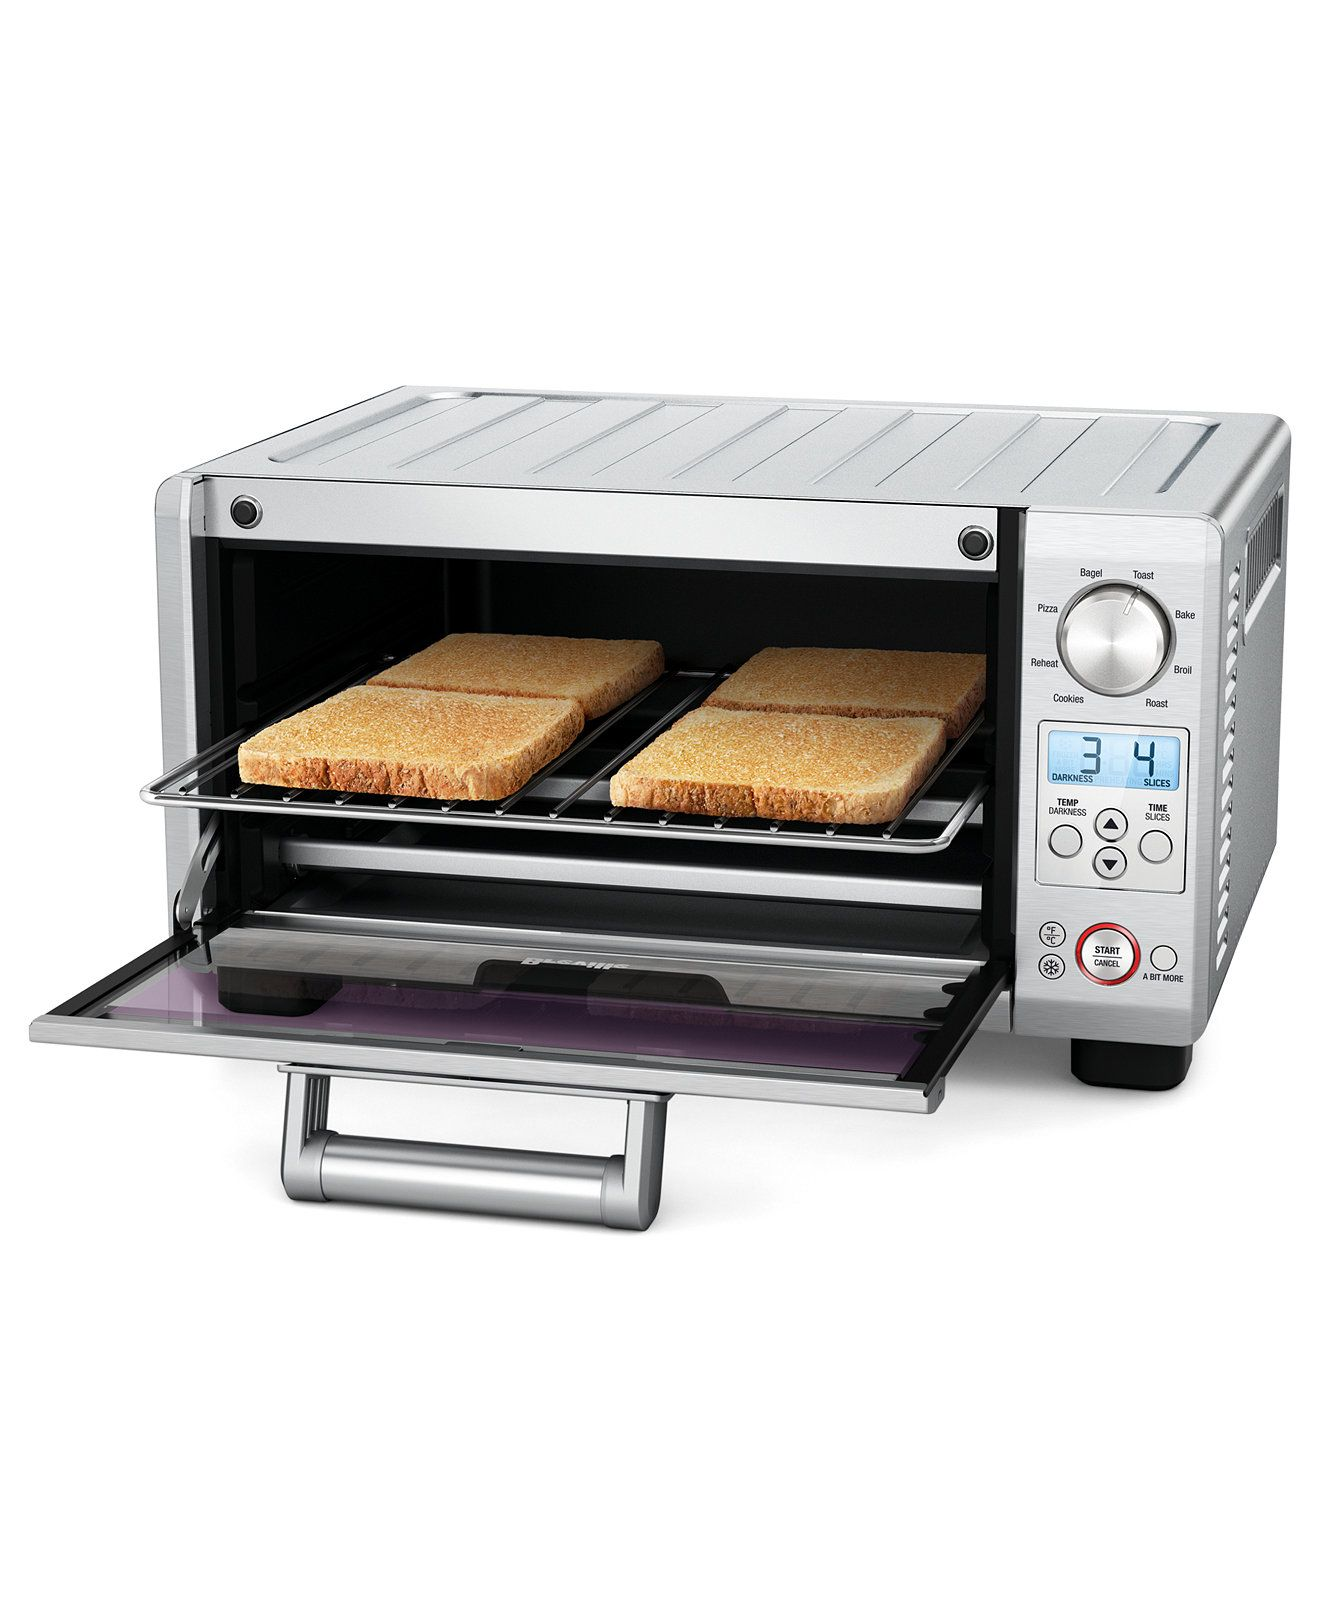 BOV450XL Toaster Oven, The Mini Smart Oven Smart oven